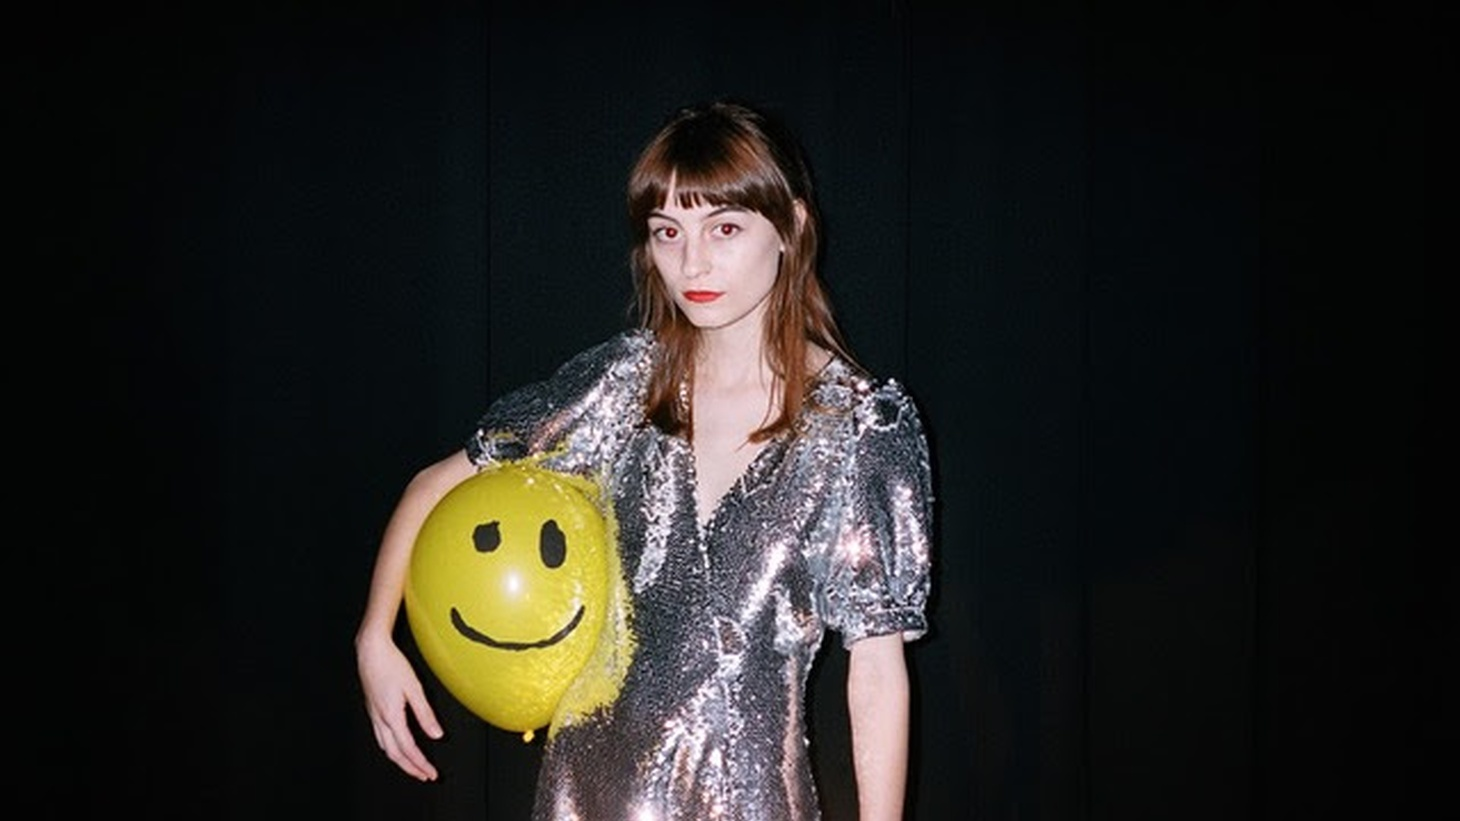 """Faye Webster made many 2019 year-end lists with her album Atlanta Millionaires Club . Now, she's back with """"In A Good Way,"""" a standalone single that offers up a cool, slow jam."""